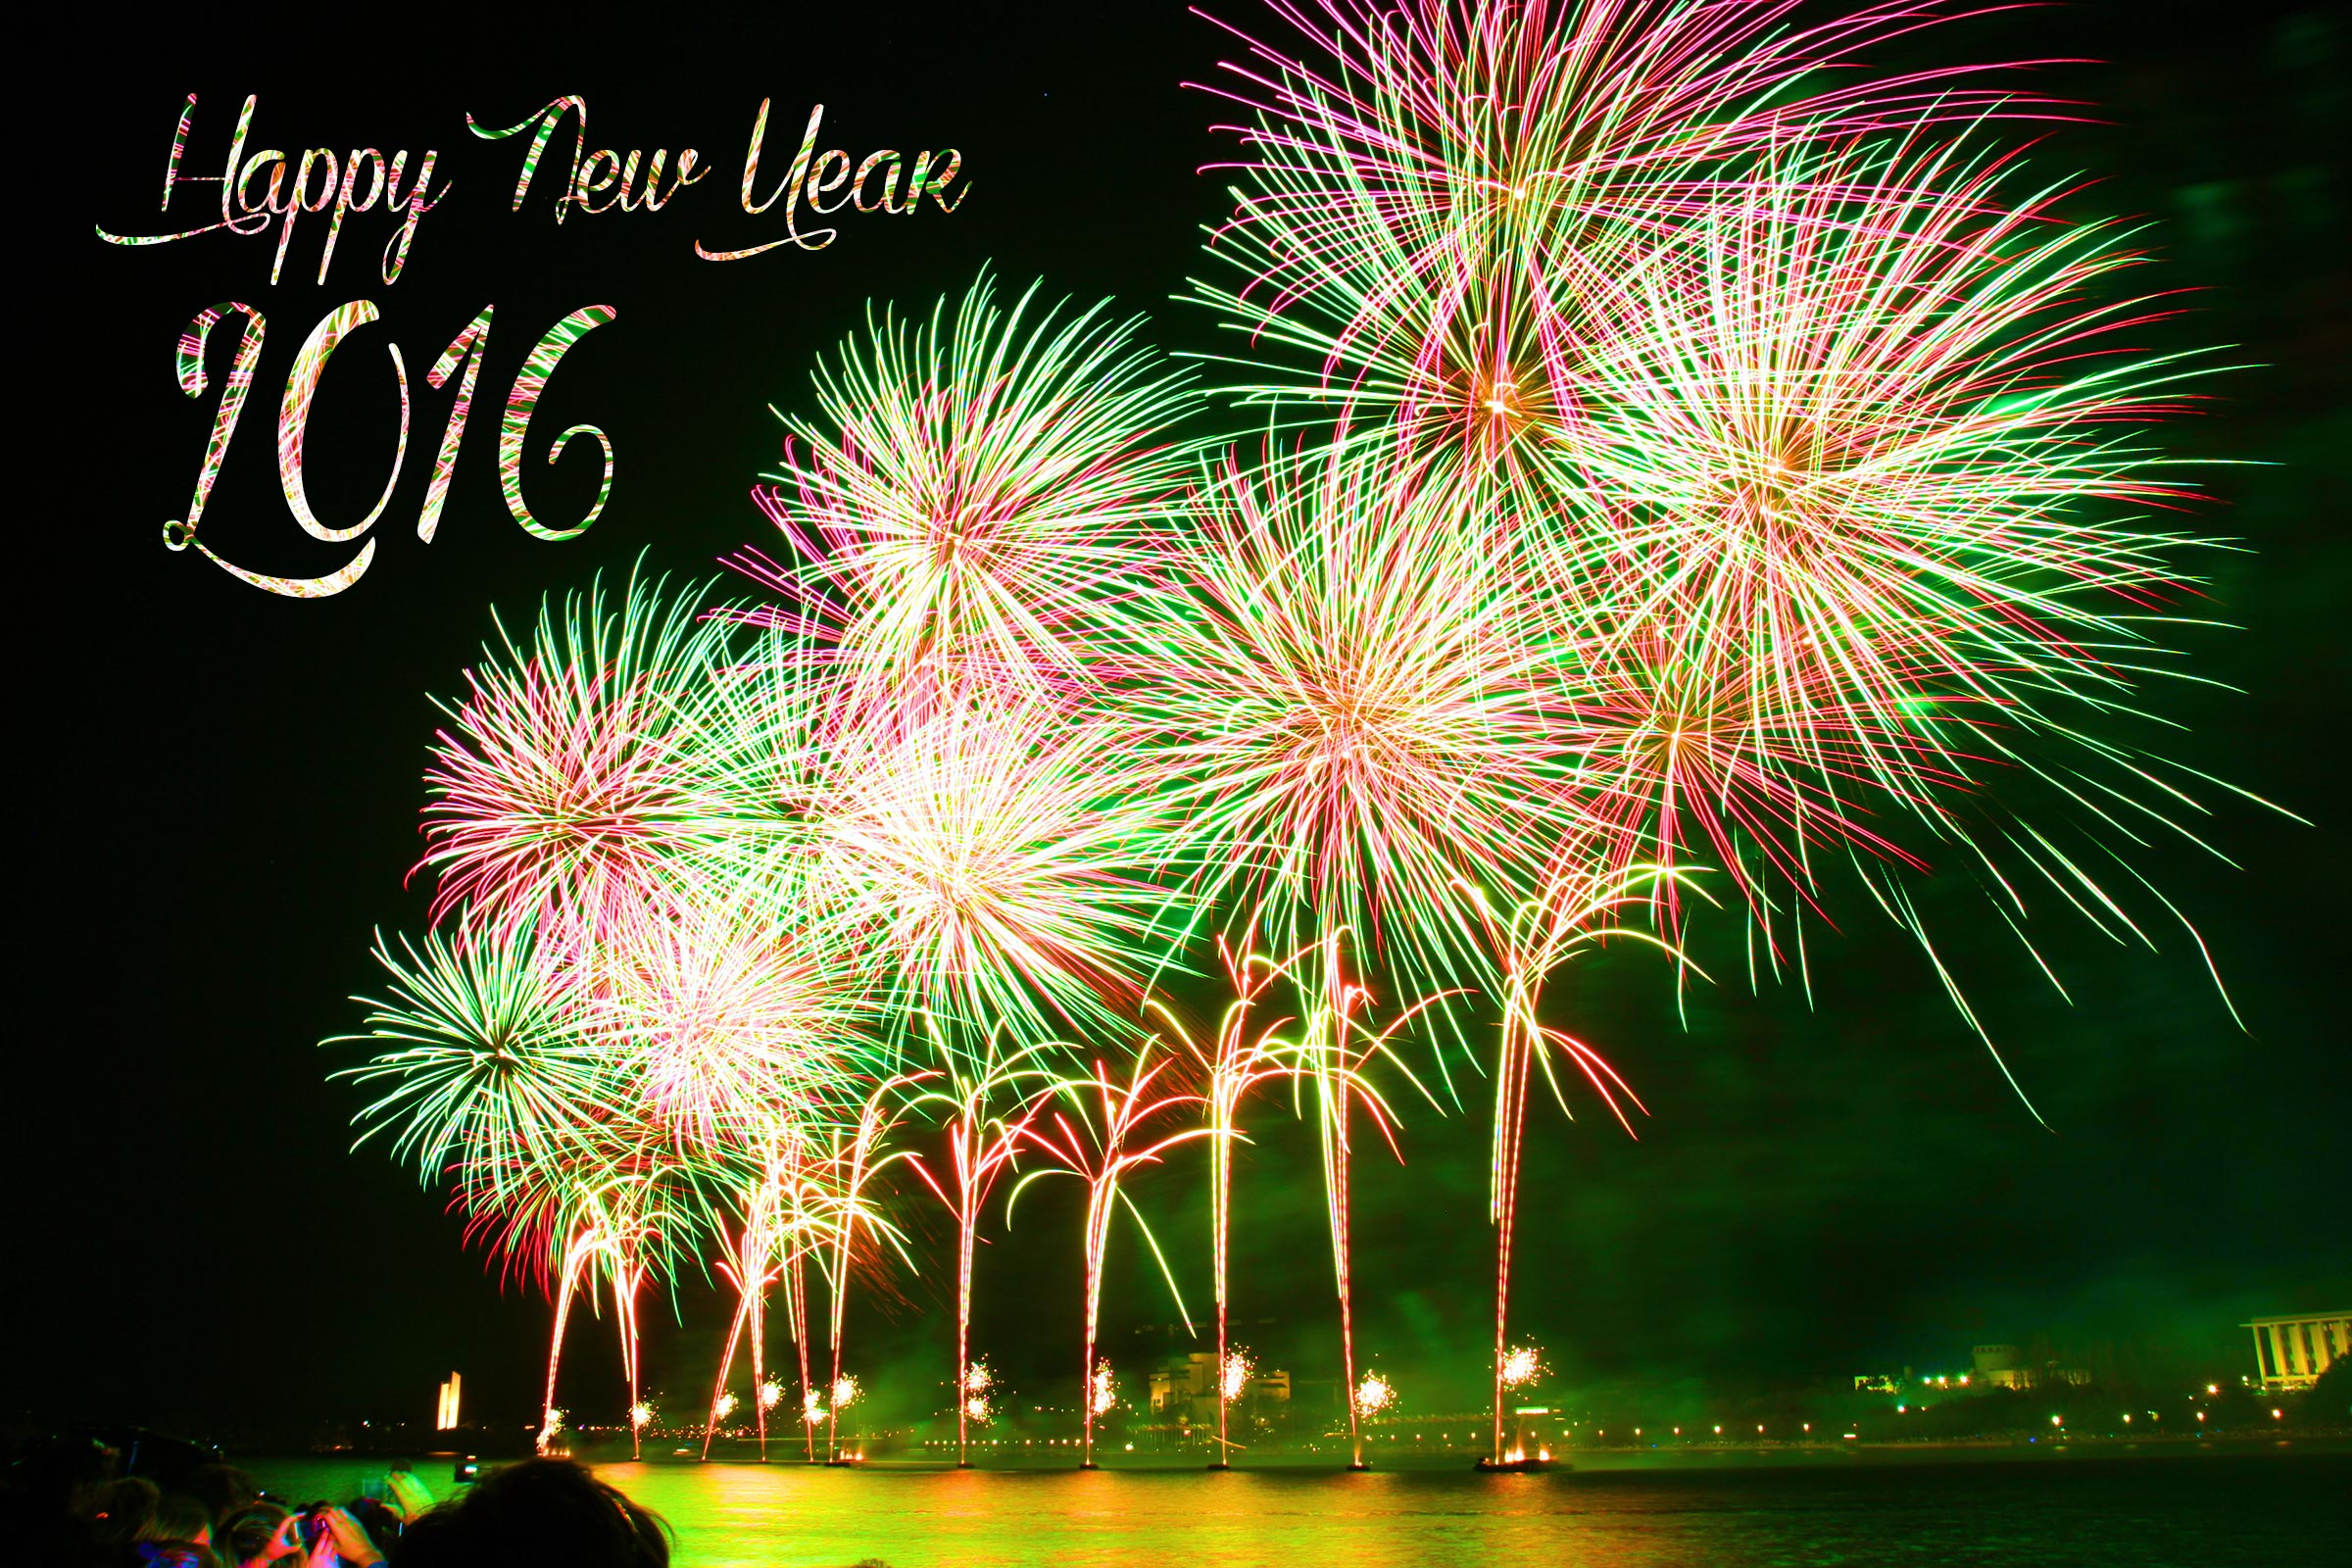 Happy New Year 2016 Wallpapers HD, Images u0026 Facebook Cover